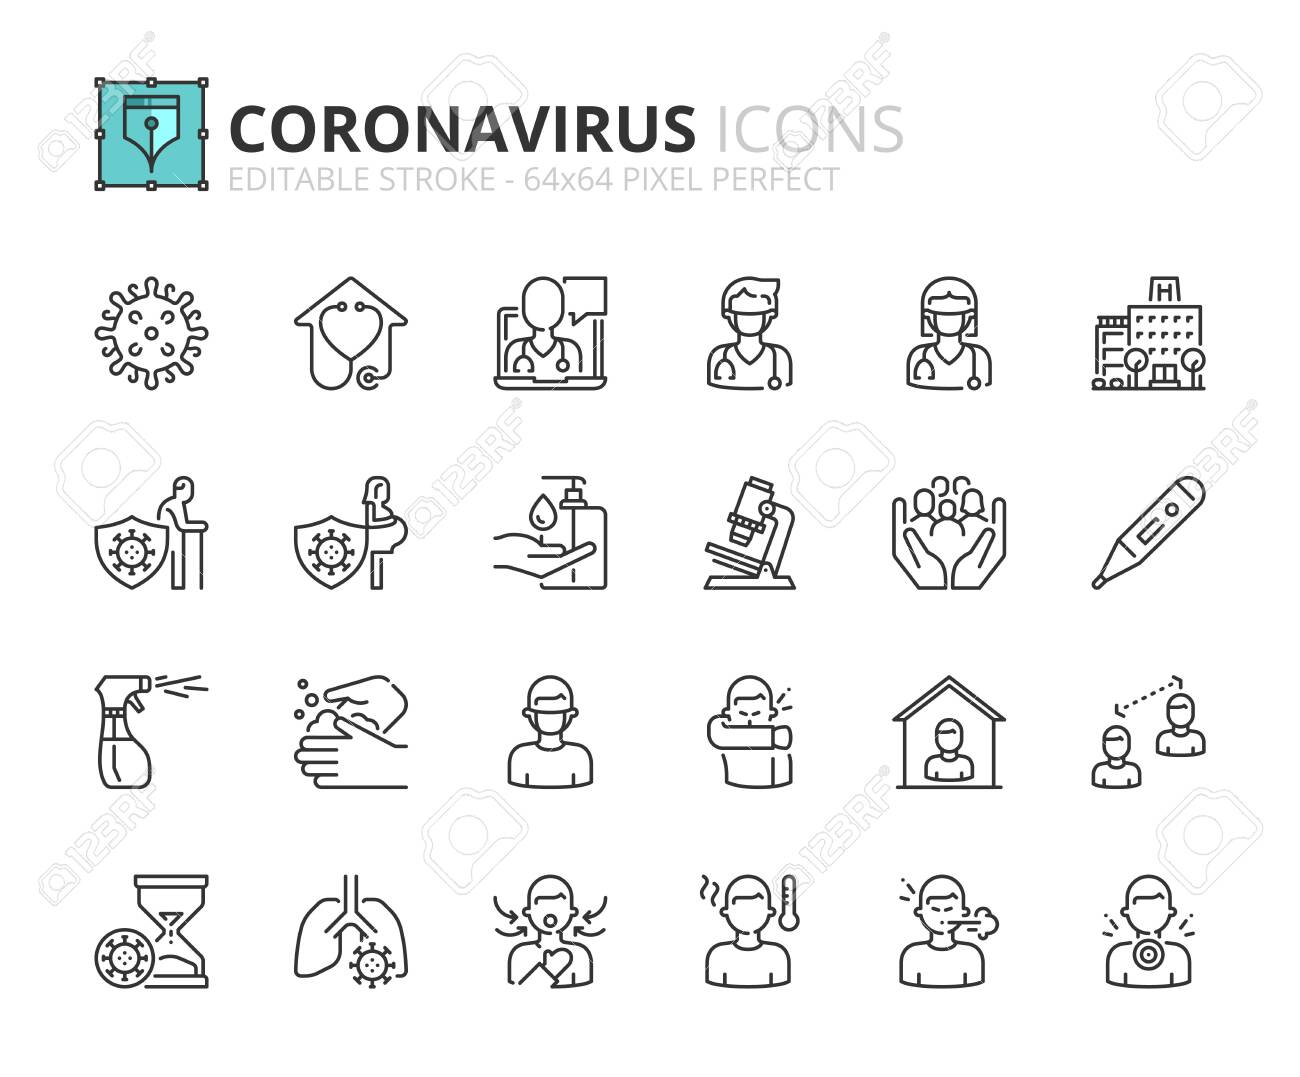 Outline icons about Coronavirus prevention and symptoms. Health care. Editable stroke 64x64 pixel perfect. - 144112766